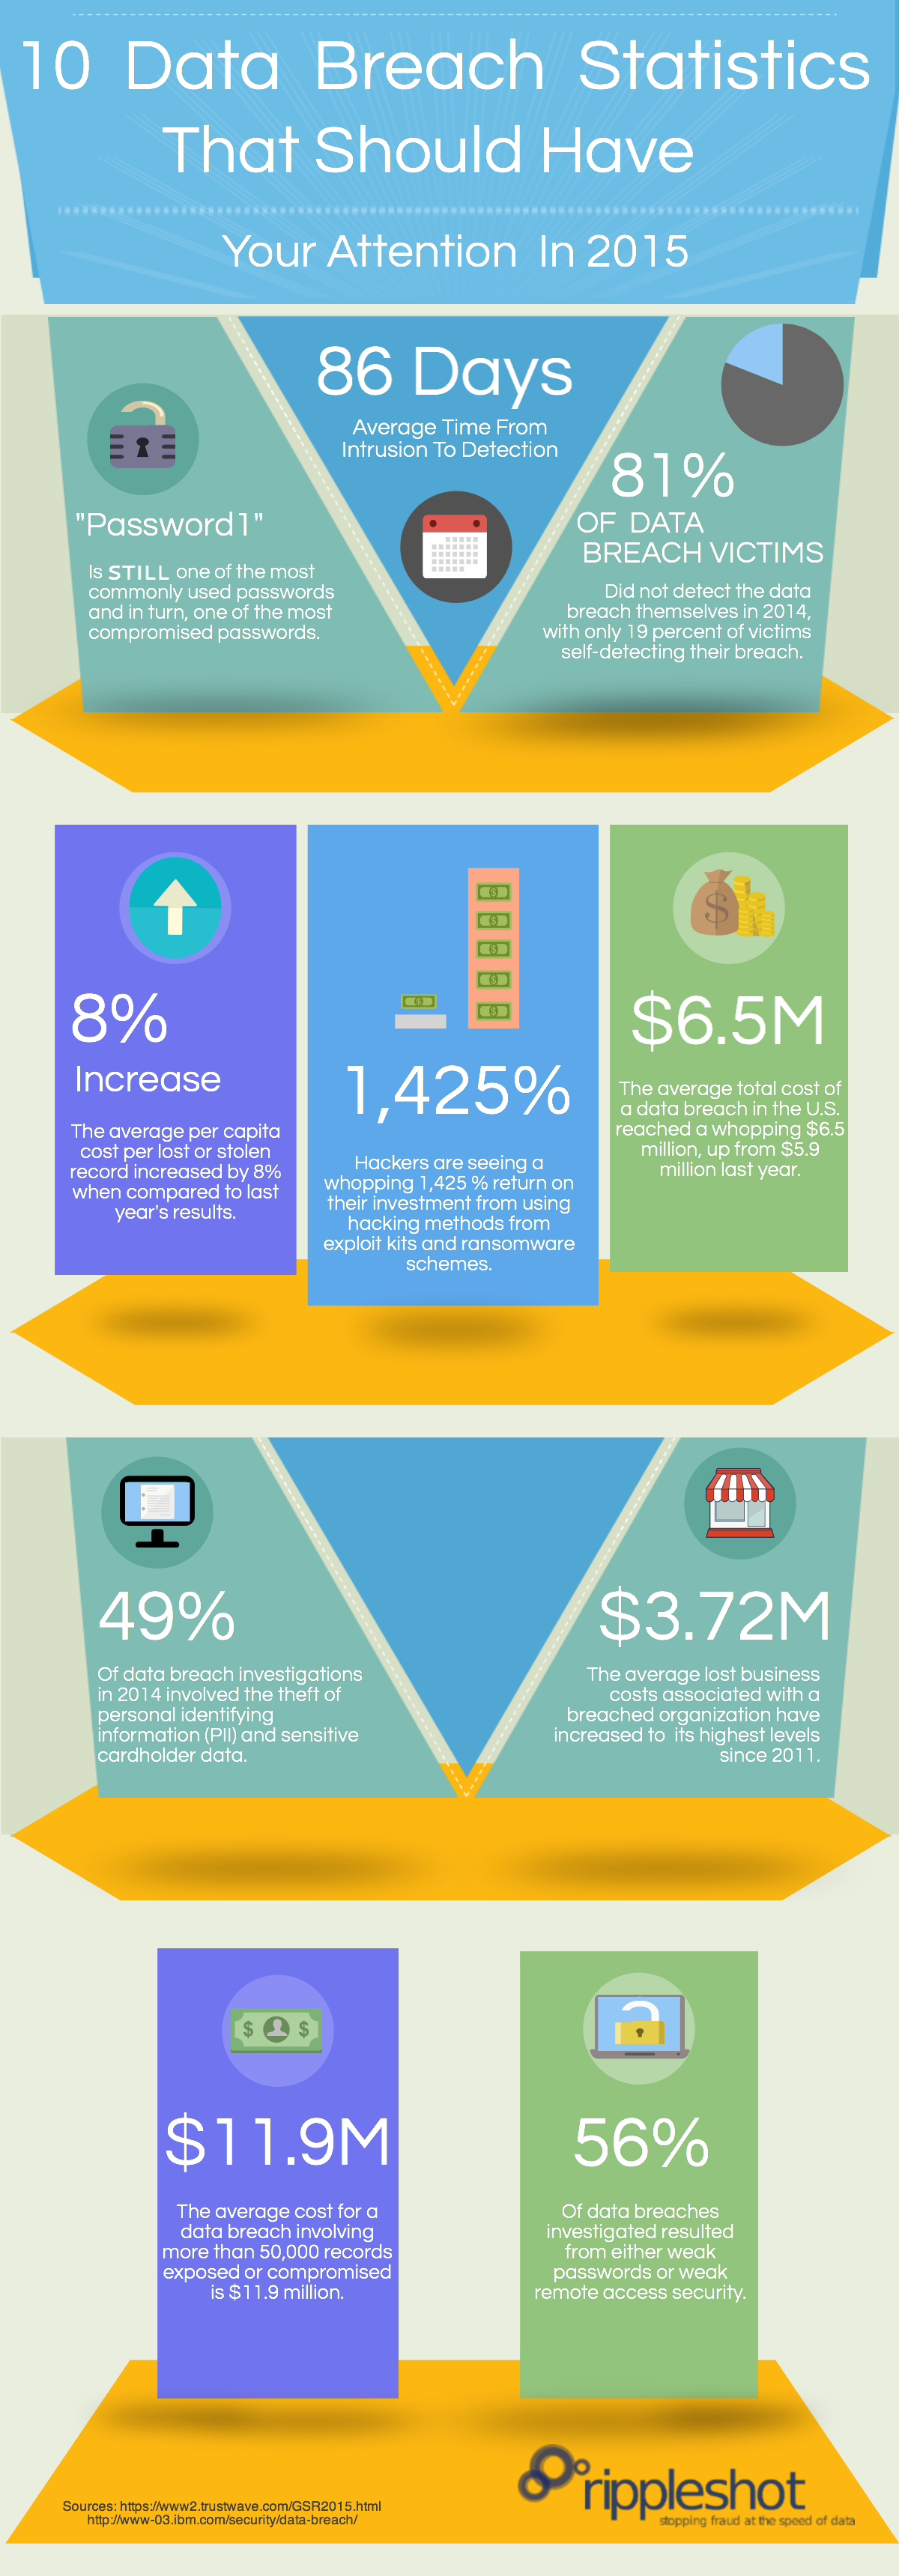 10_Data_Breach_Statistics_Infographic